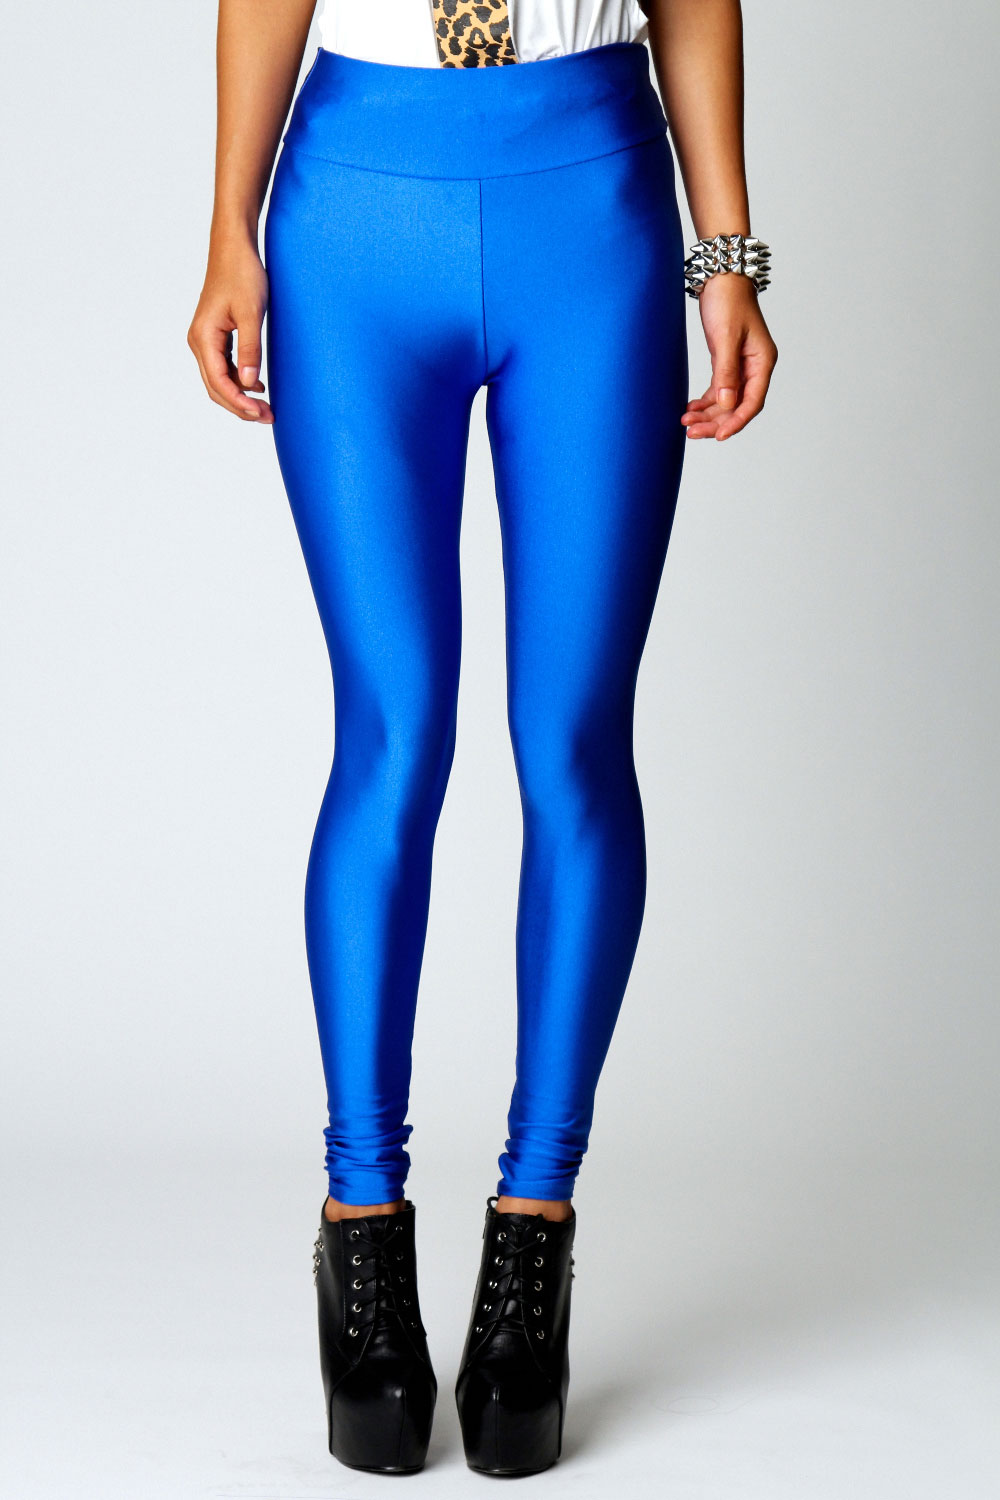 Boohoo-Womens-Ladies-Amerie-High-Shine-High-Waisted-Disco-Pants